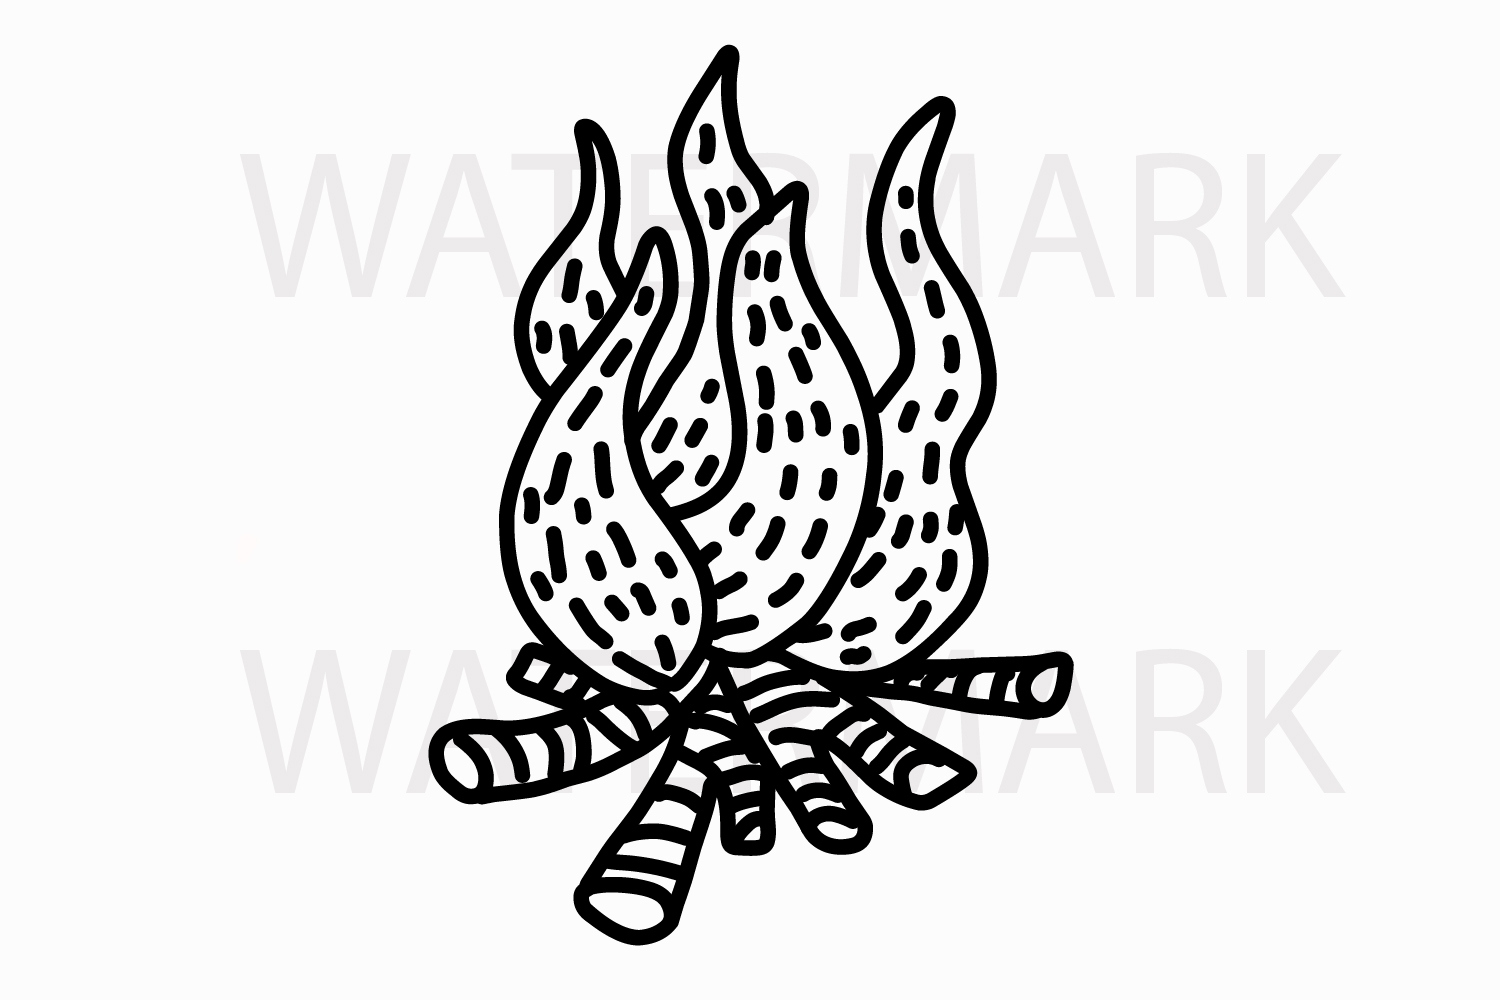 Fire element camping - SVG/JPG/PNG Hand Drawing example image 1